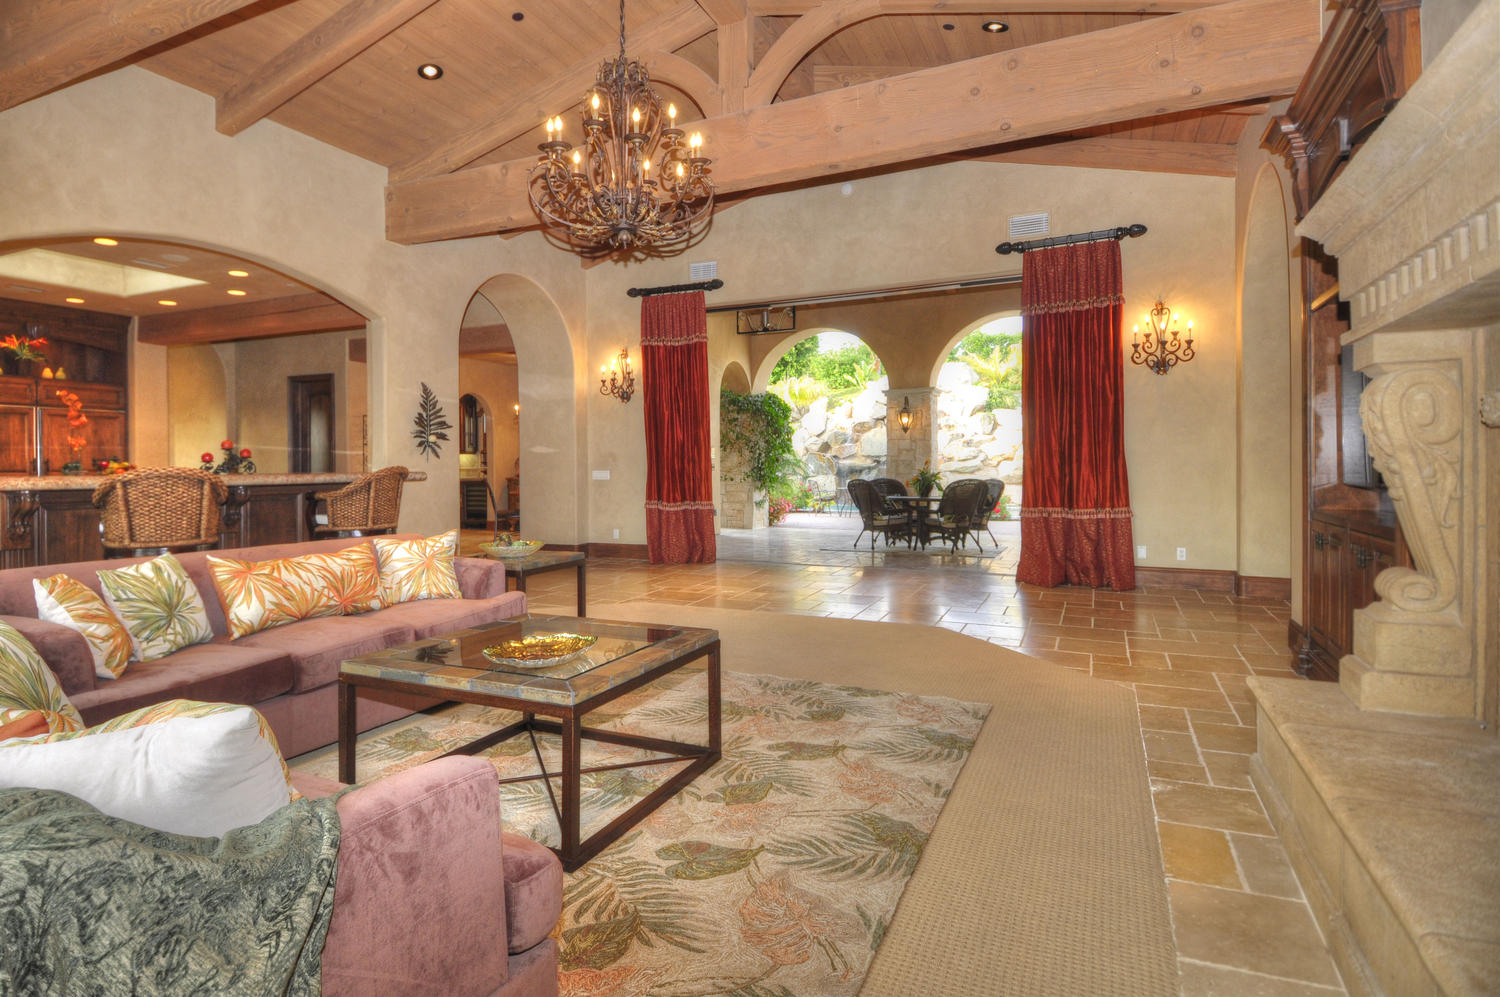 Staged Homes Real Estate image 3